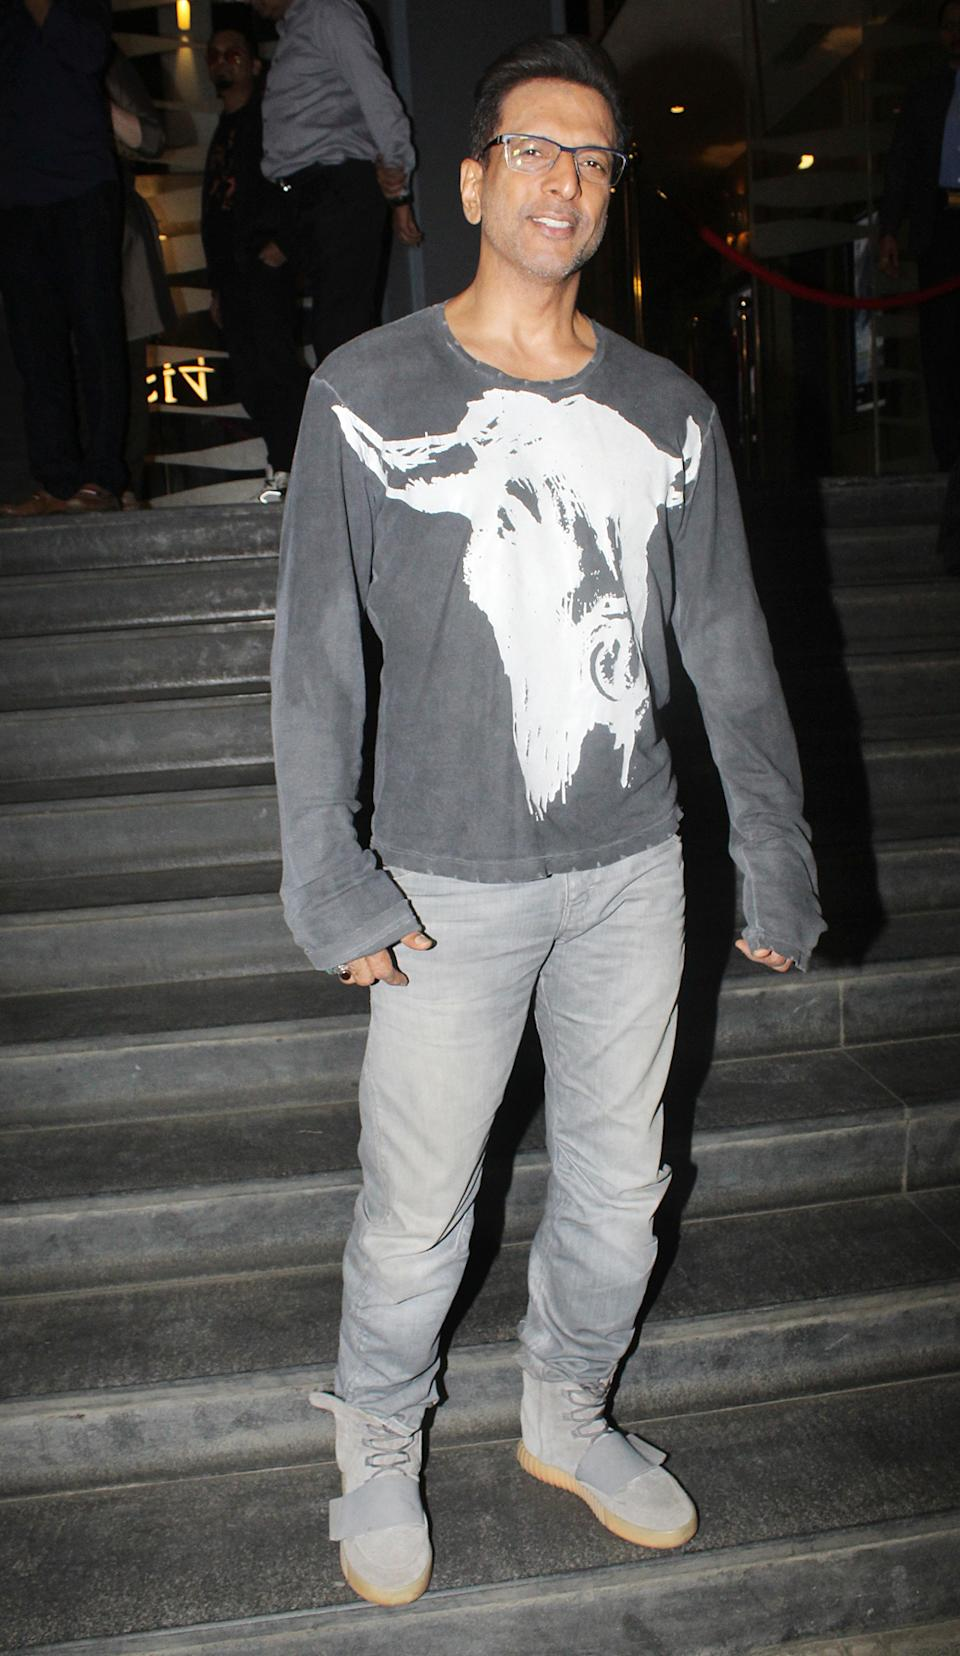 Javed Jaffery was also spotted at the screening.